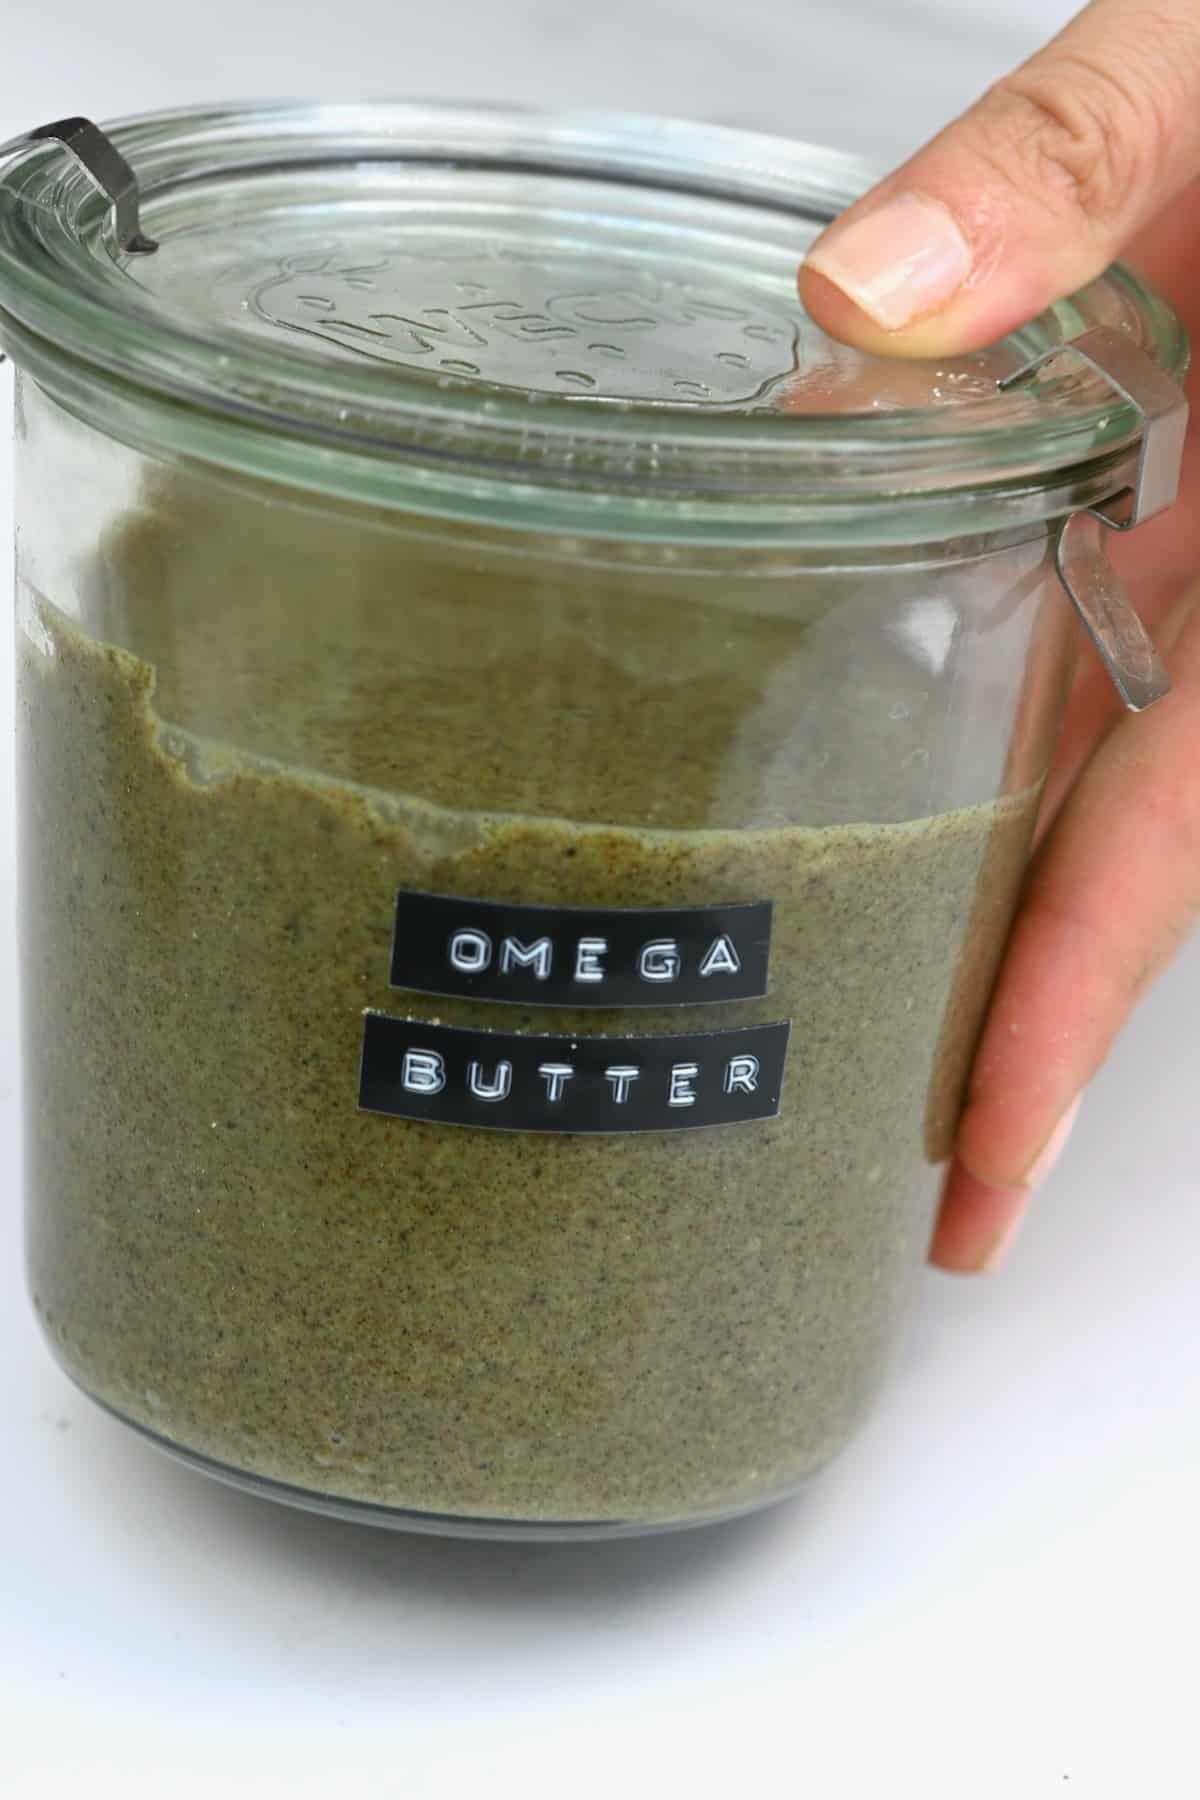 A jar with omega seed butter